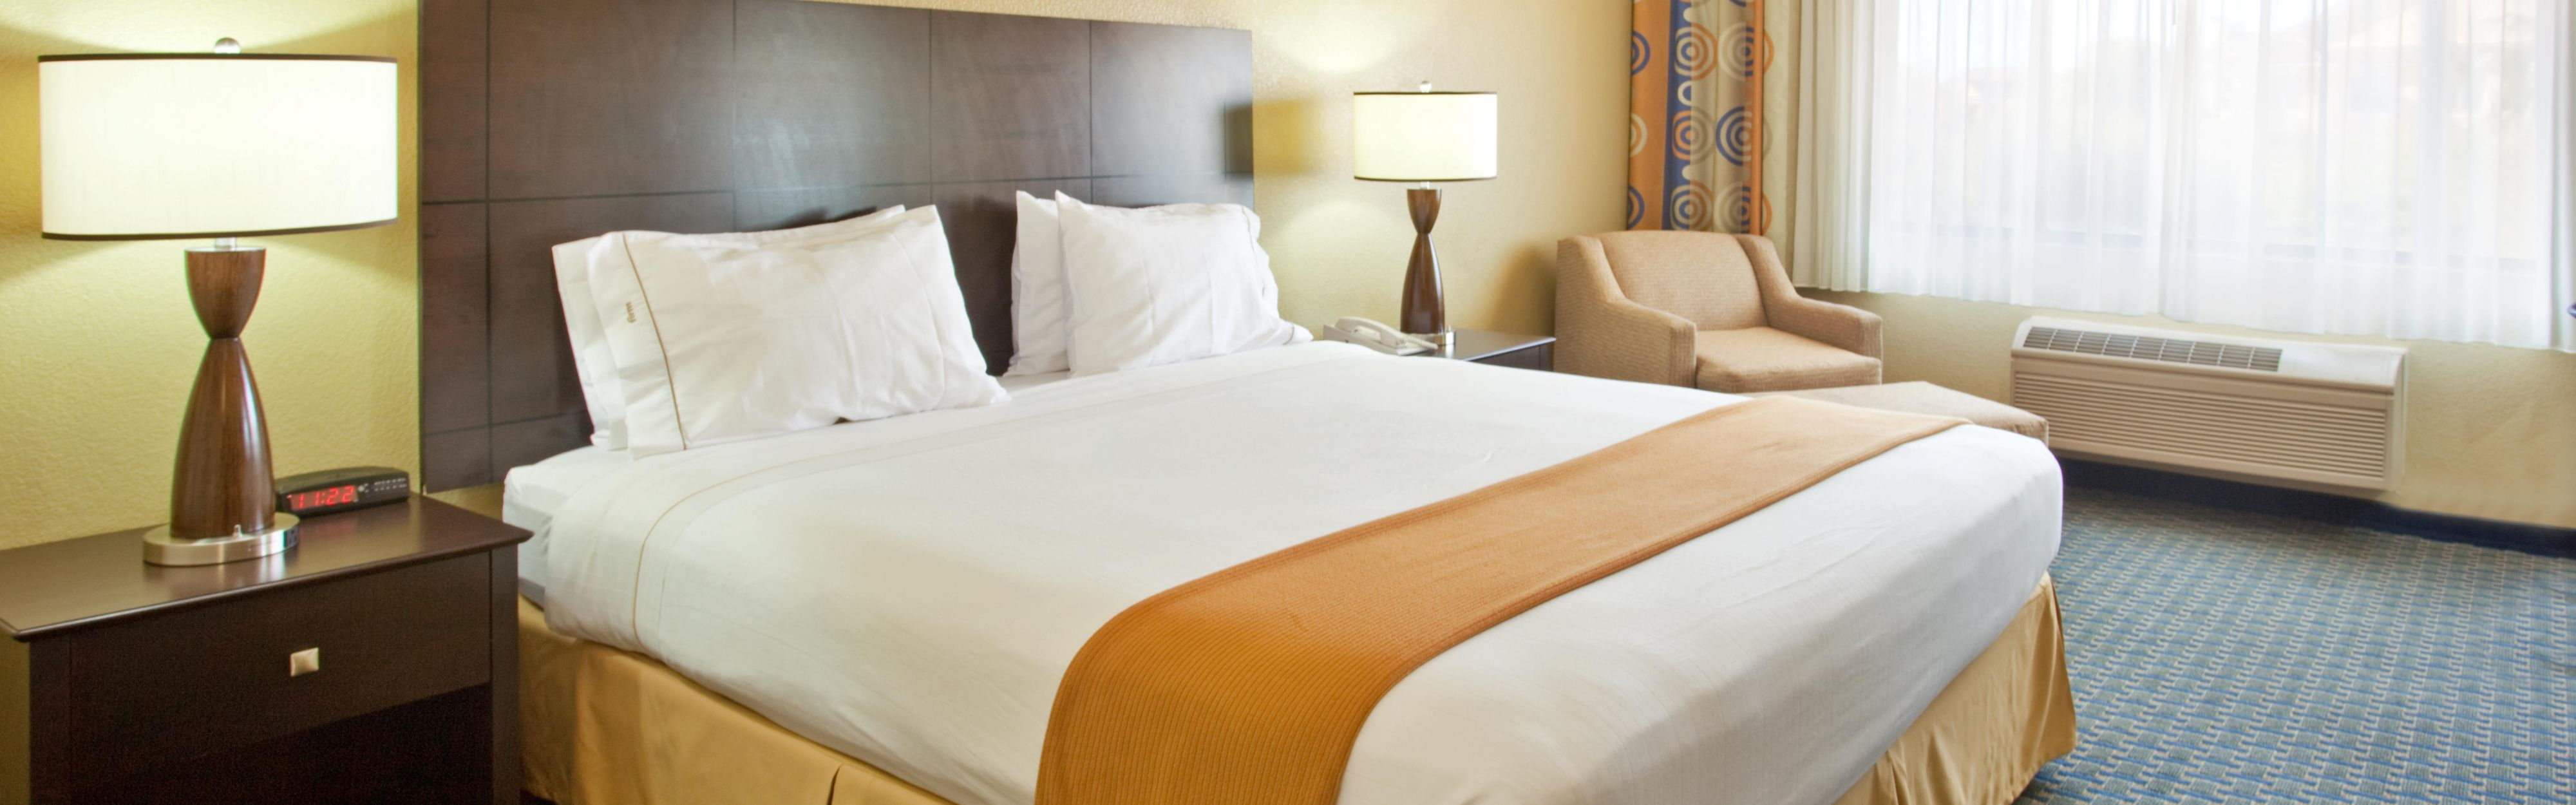 Holiday Inn Express & Suites Phoenix/Chandler (Ahwatukee) image 1